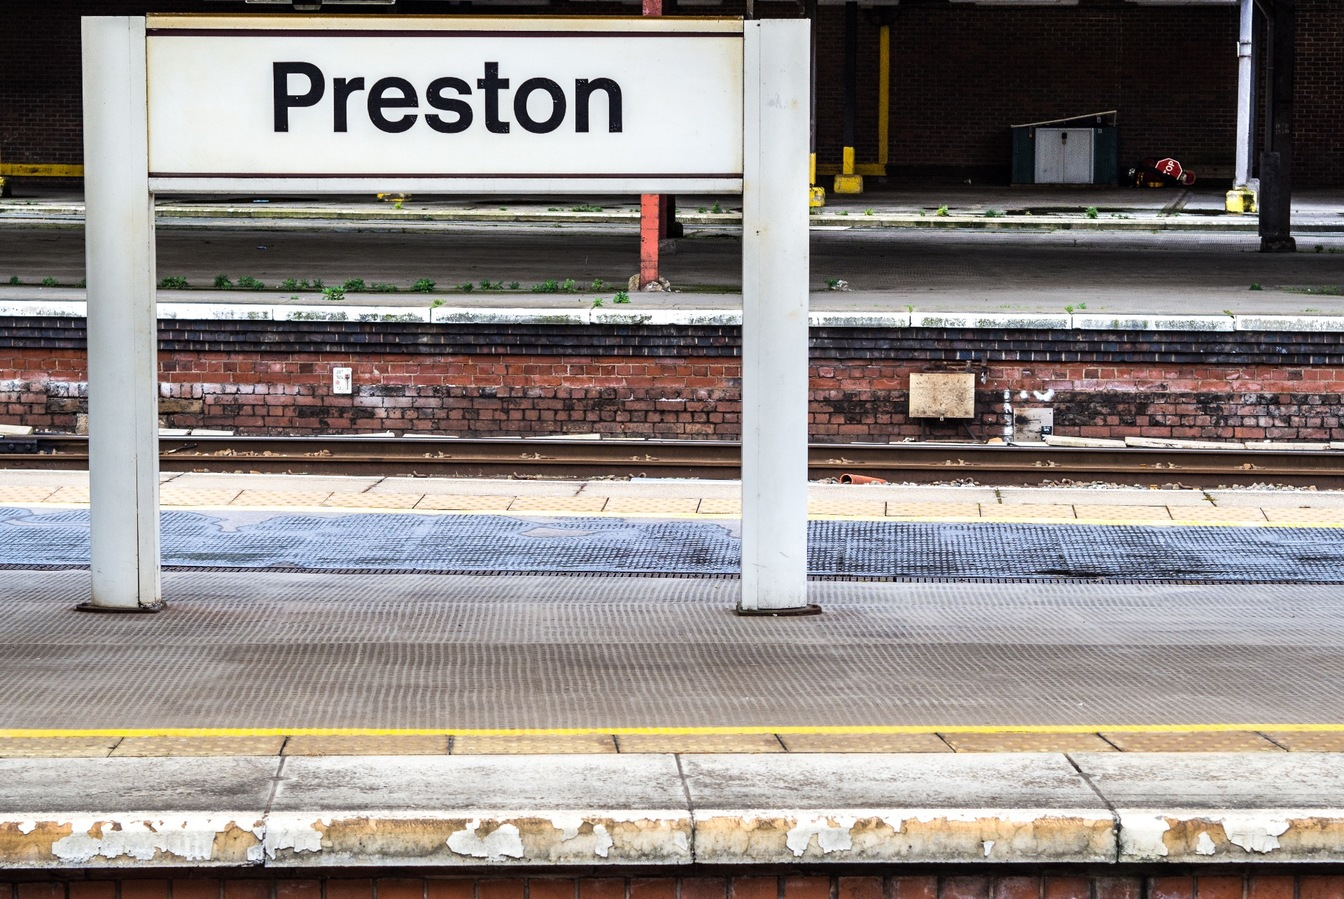 'Preston' sign in Preston train station